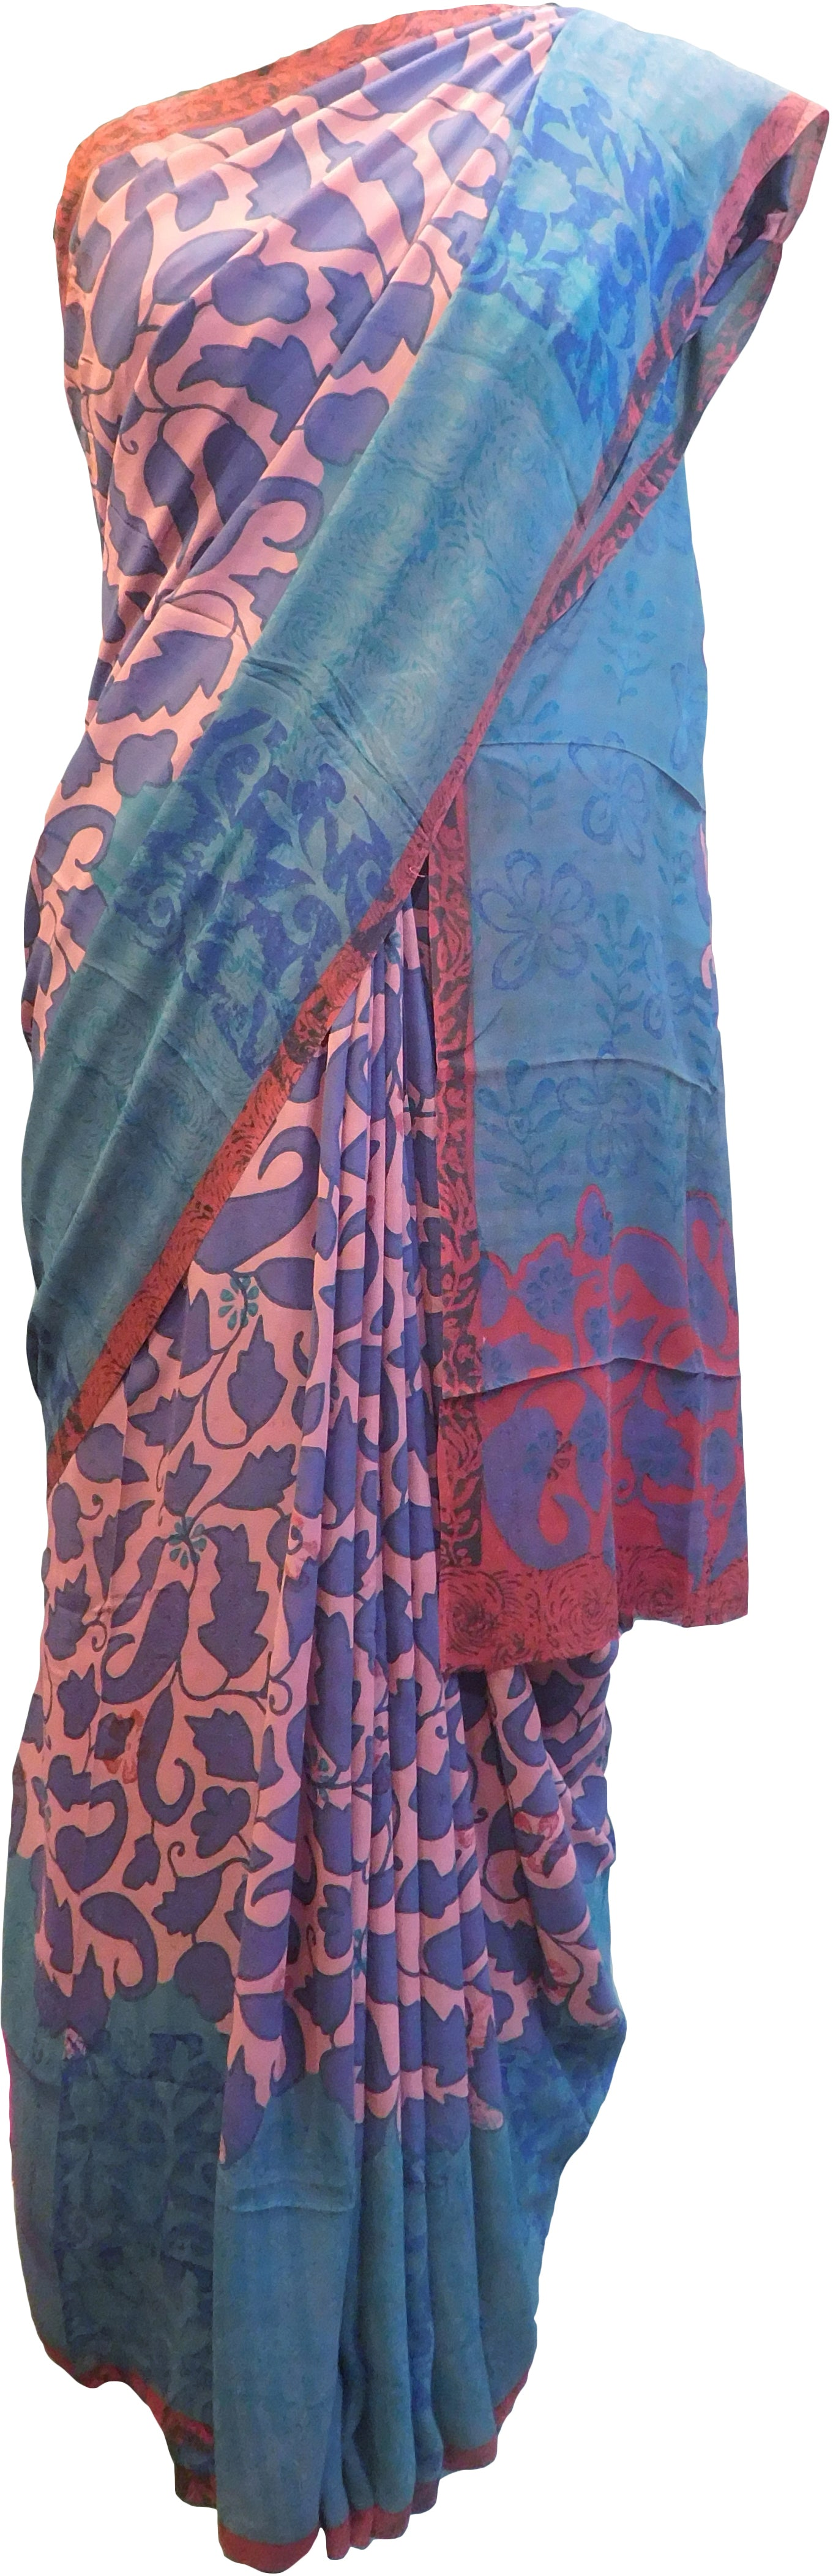 Multicolor Designer Wedding Partywear Pure Crepe Hand Brush Reprinted Kolkata Saree Sari With Blouse Piece  RP289